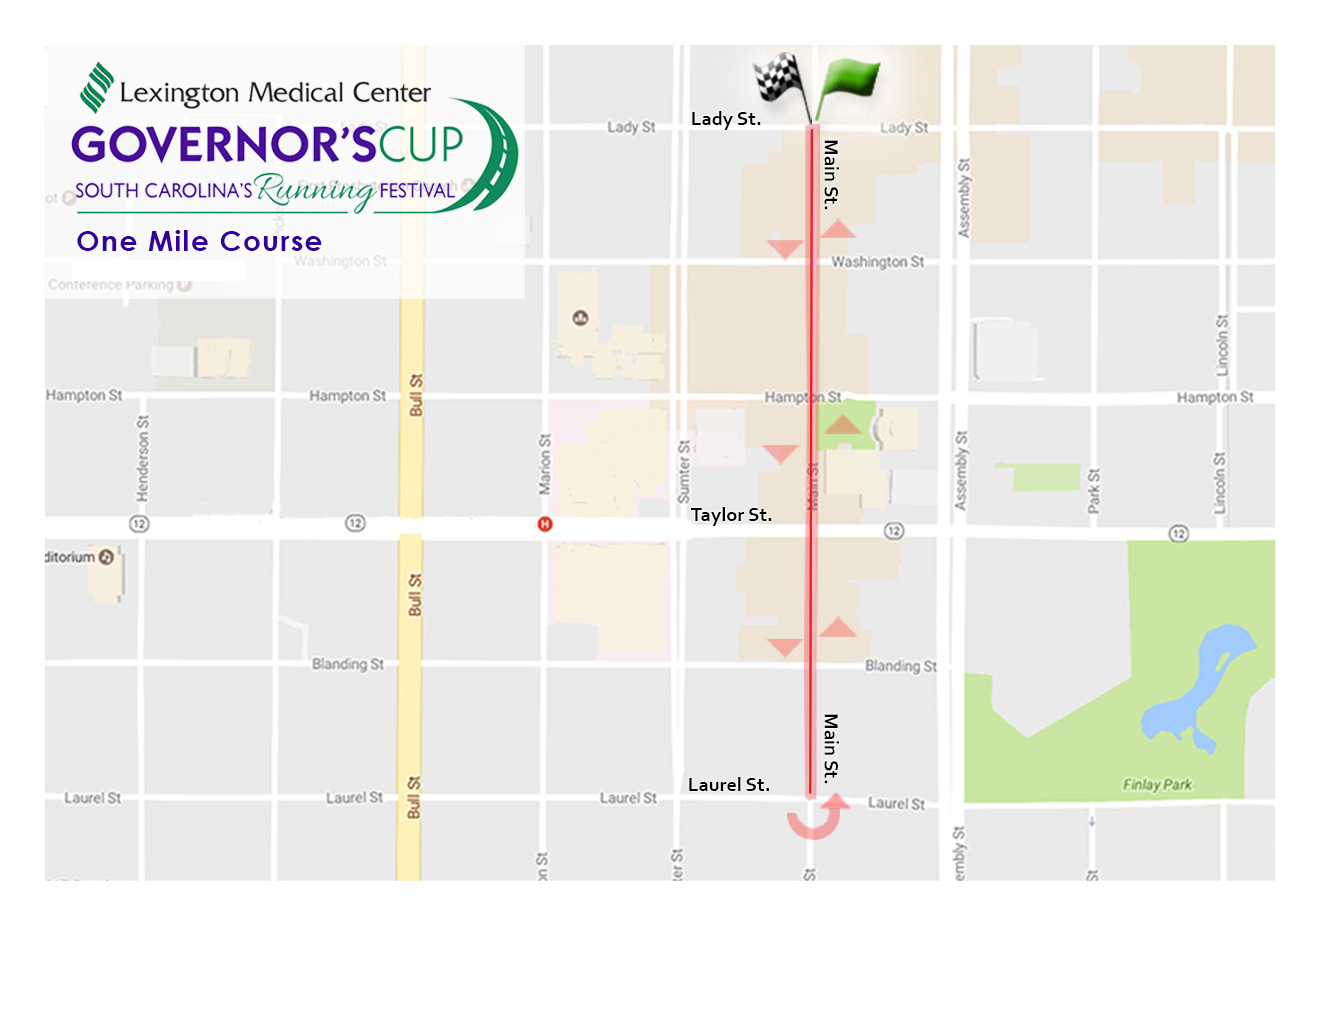 LMC Governors Cup Race - Map of usc columbia